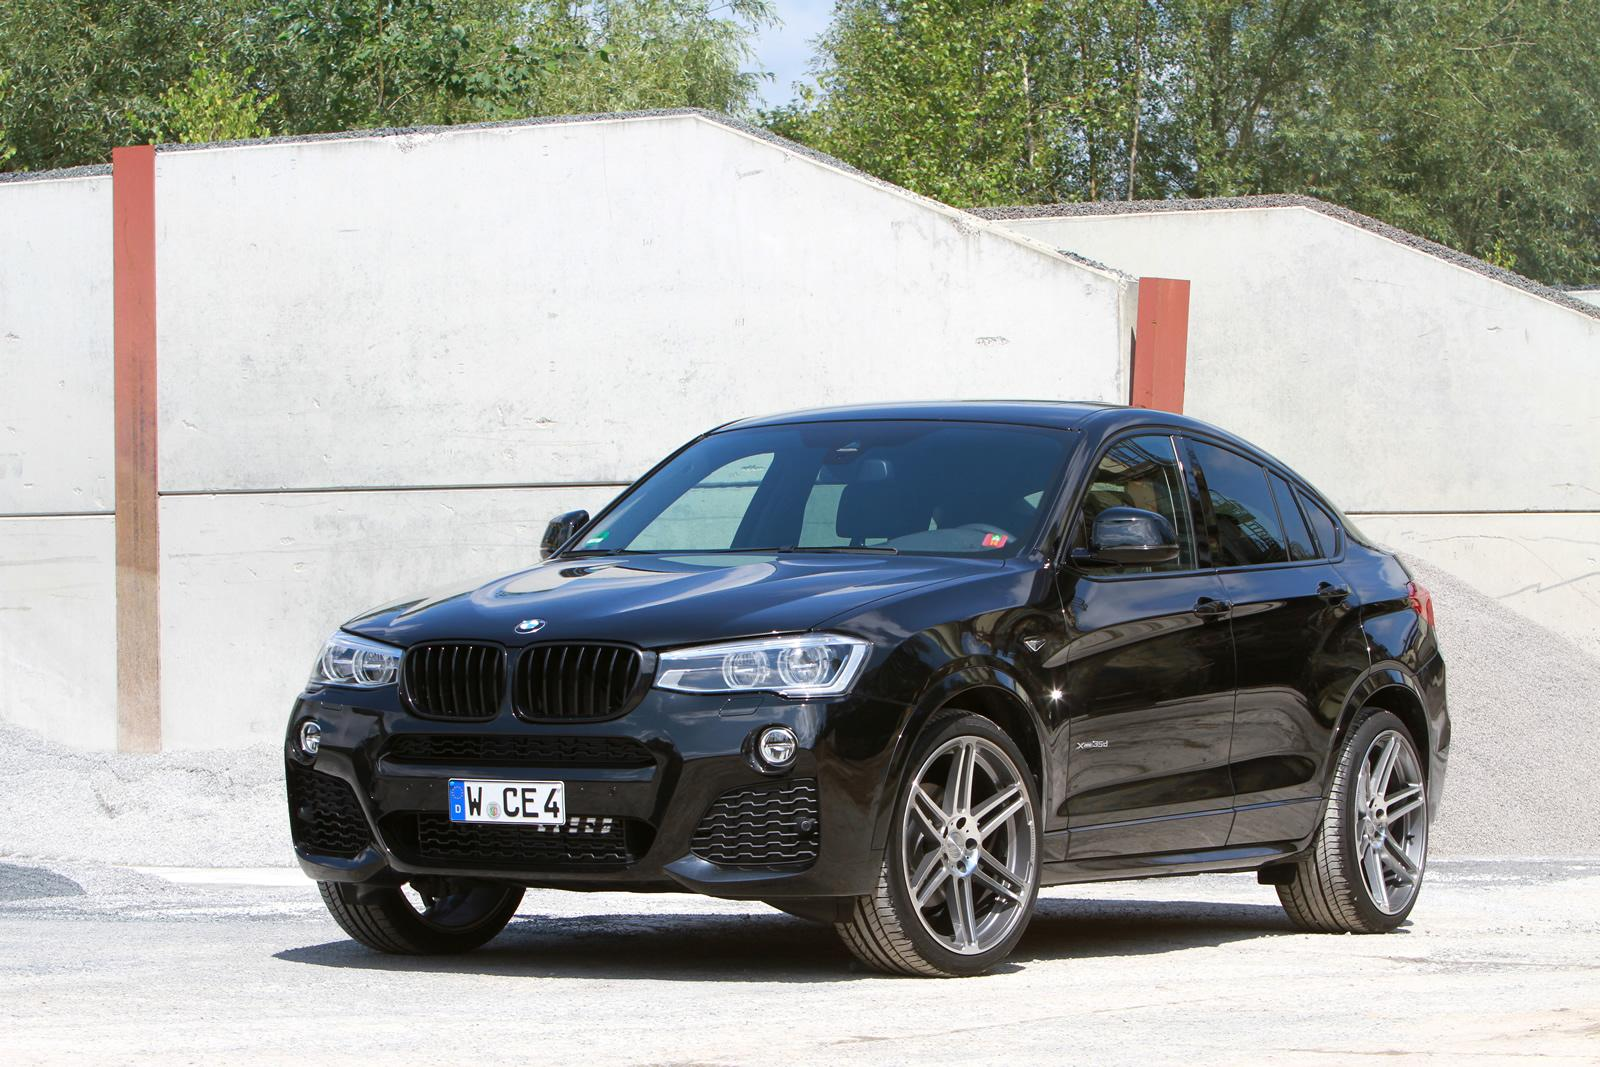 Manhart Racing BMW X4 xDrive35d photo 126942